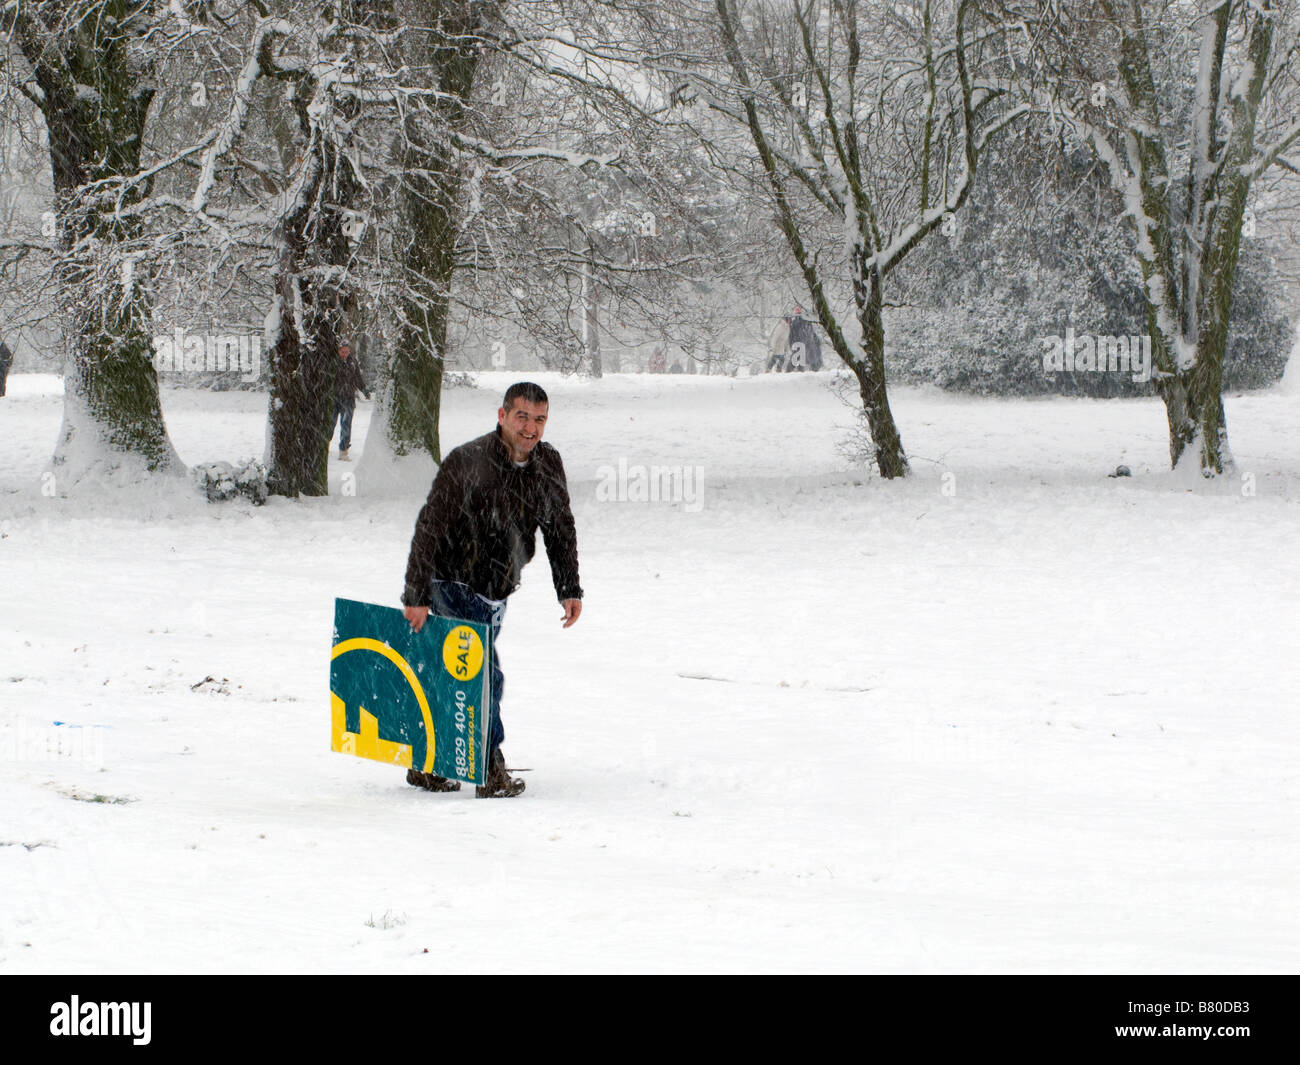 Foxtons estate agent sign carried by man to use as a sledge. - Stock Image